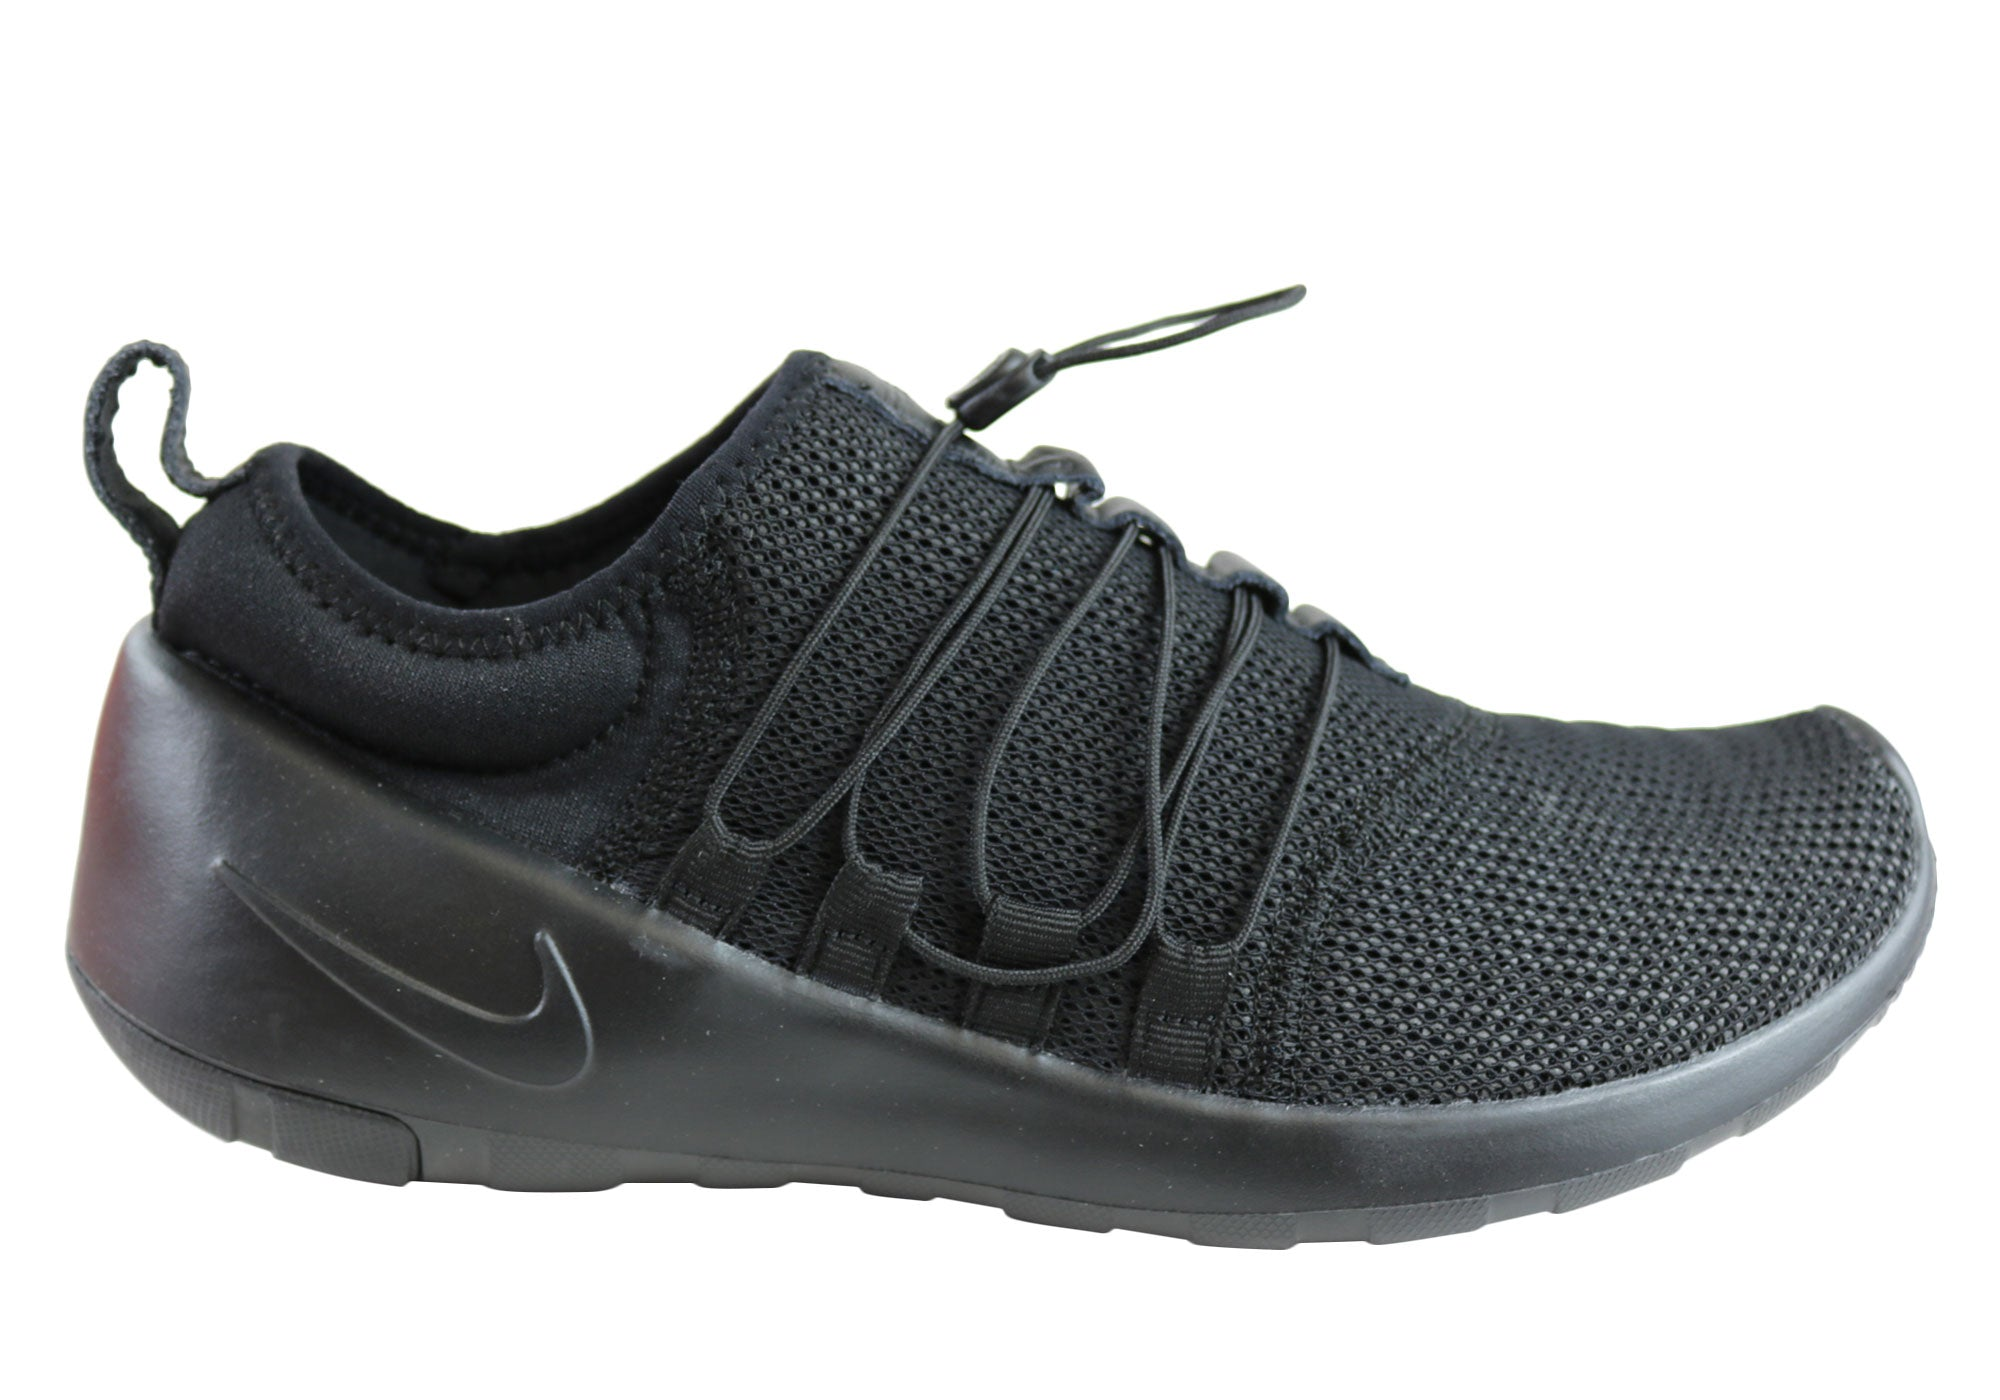 another chance 80e0e 4a002 Details about NEW NIKE PAYAA PREMIUM QS MENS COMFORTABLE ELASTIC SLIP ON  SHOES